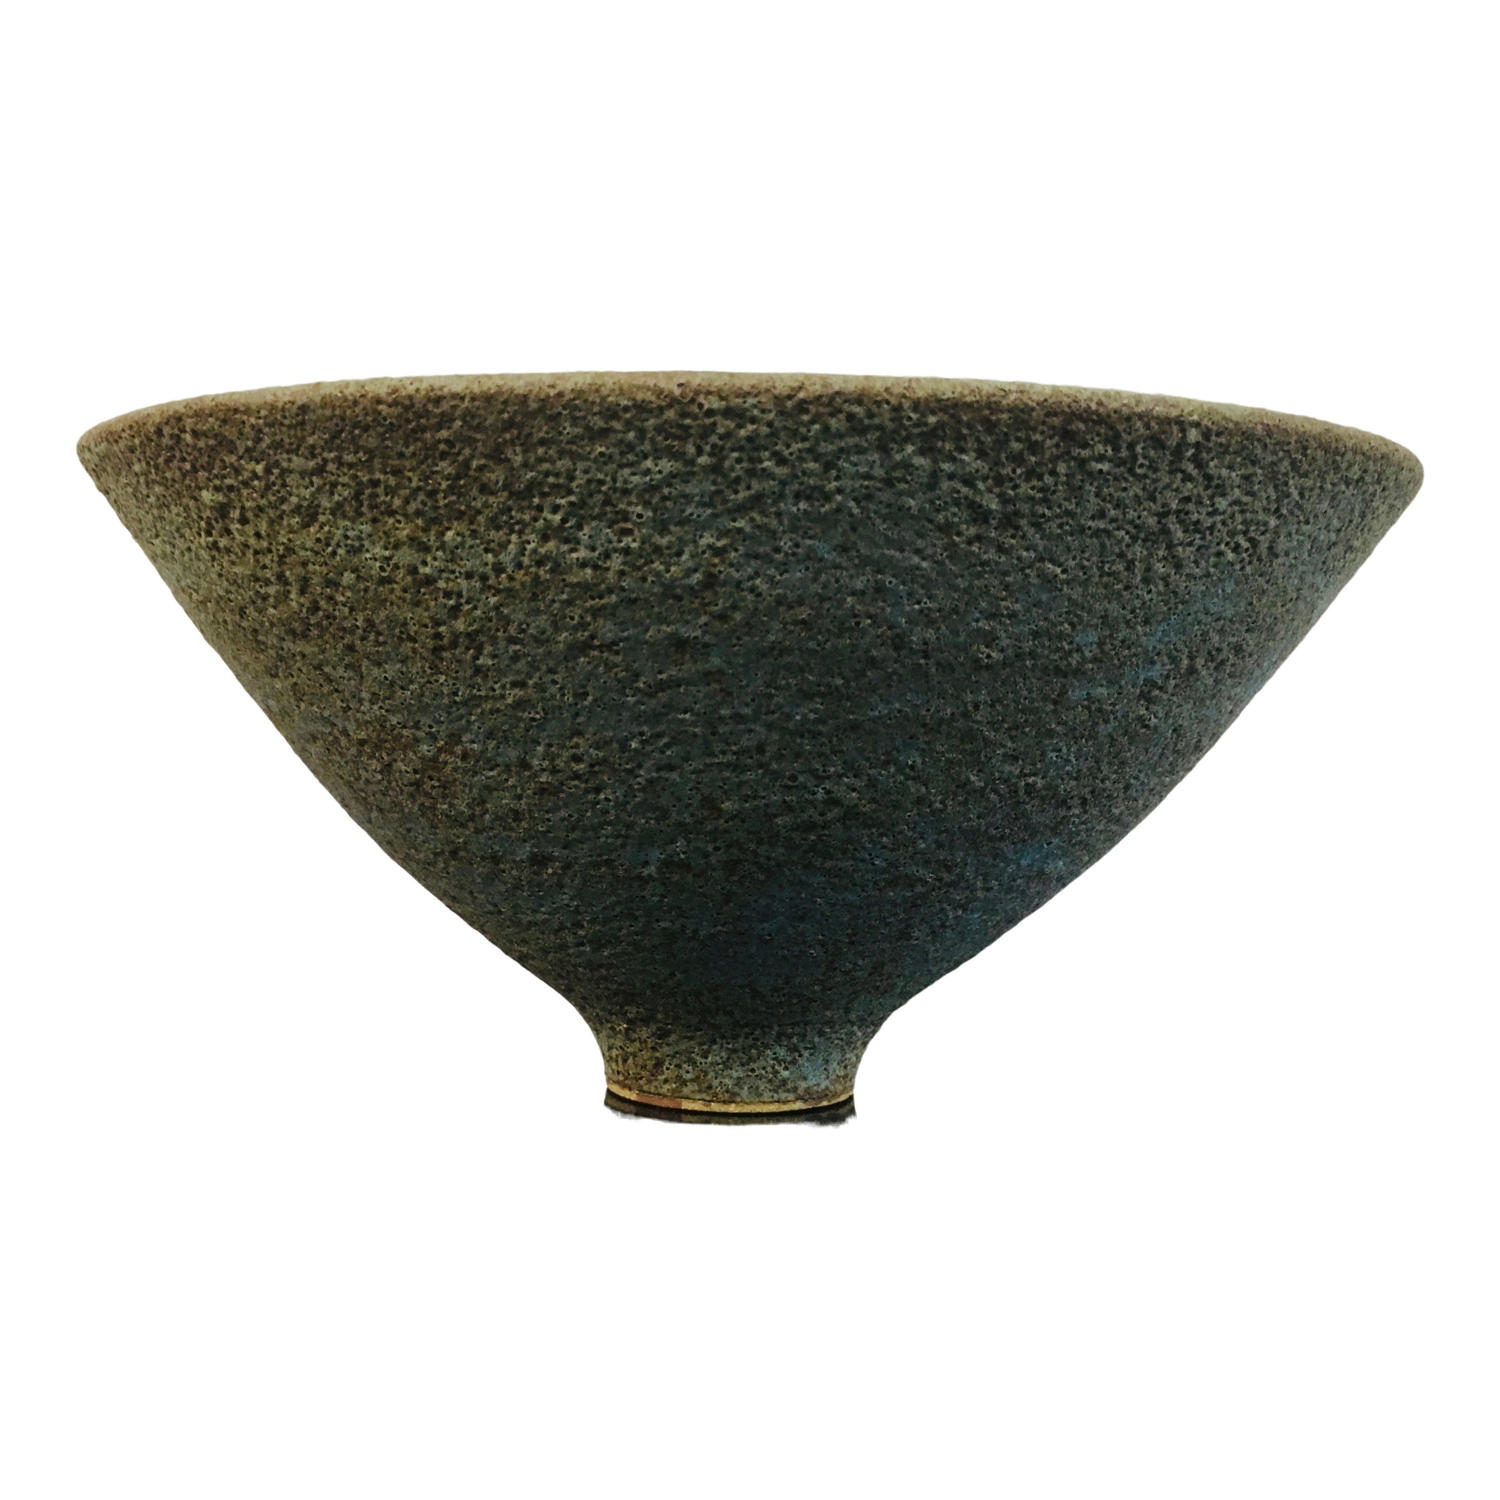 Blue textured studio pottery bowl